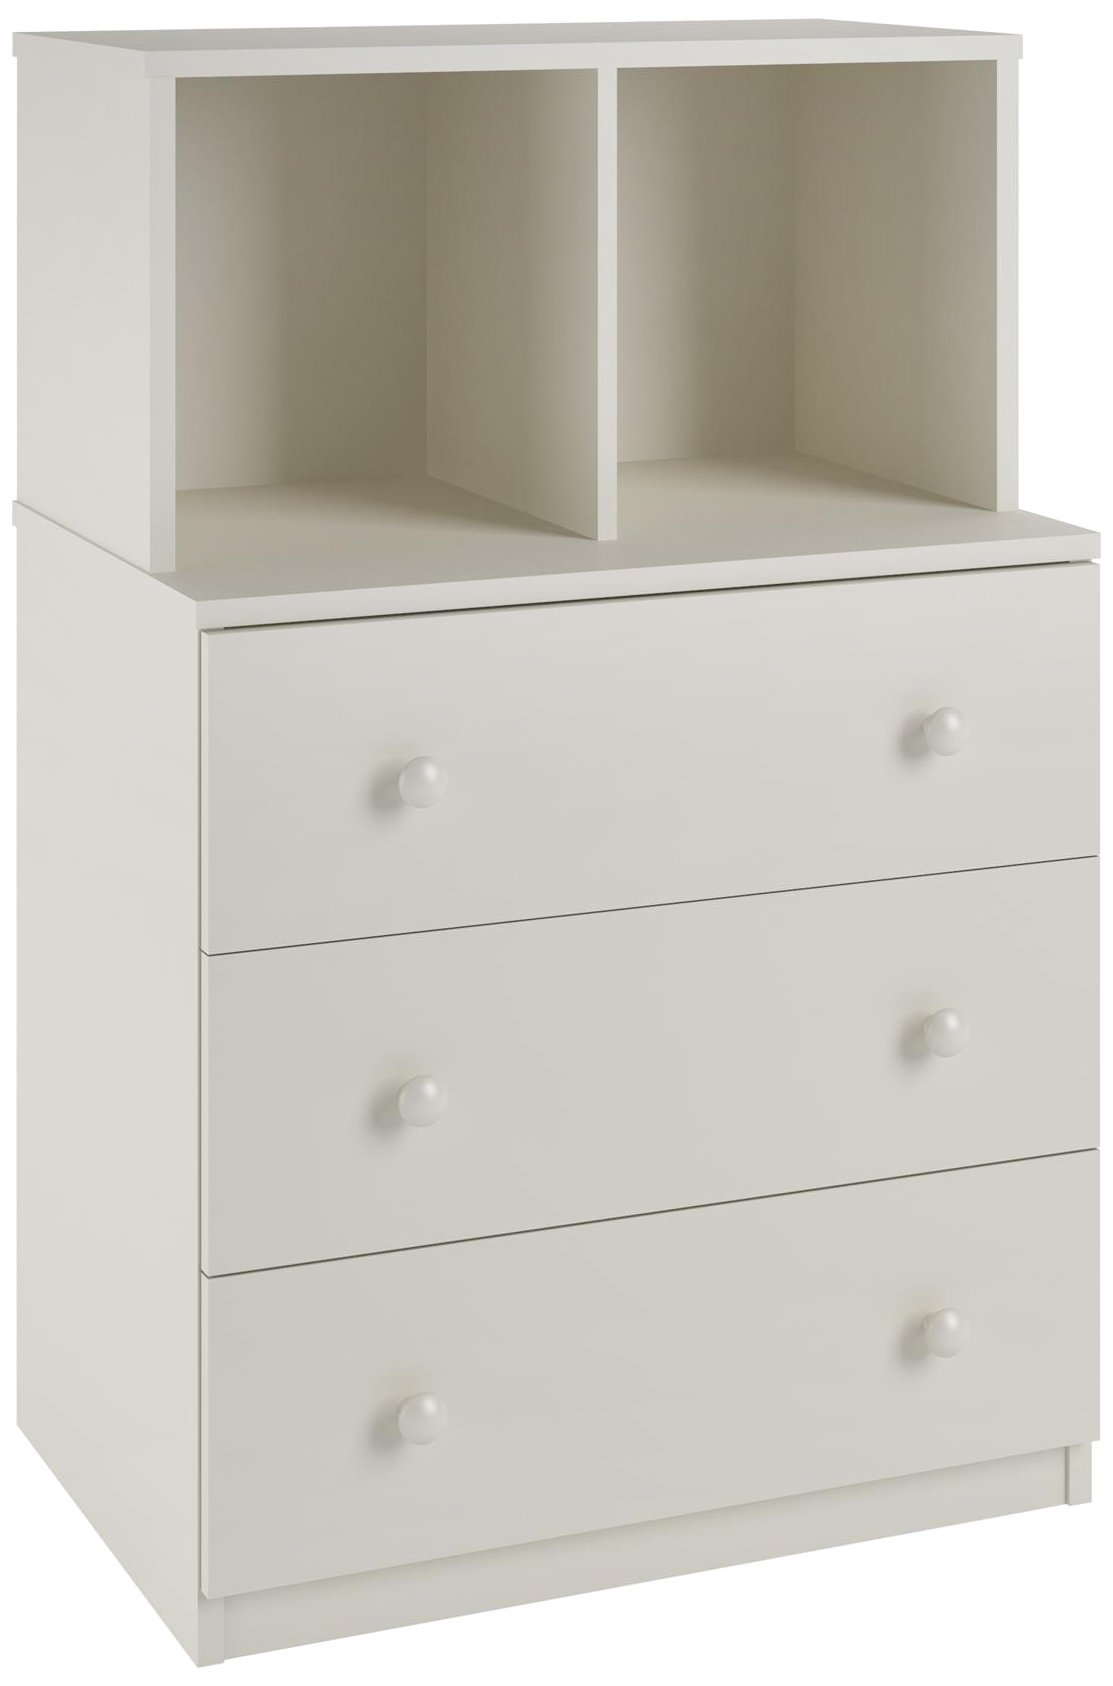 Ameriwood Home Skyler 3 Drawer Dresser with Cubbies, White by Ameriwood Home